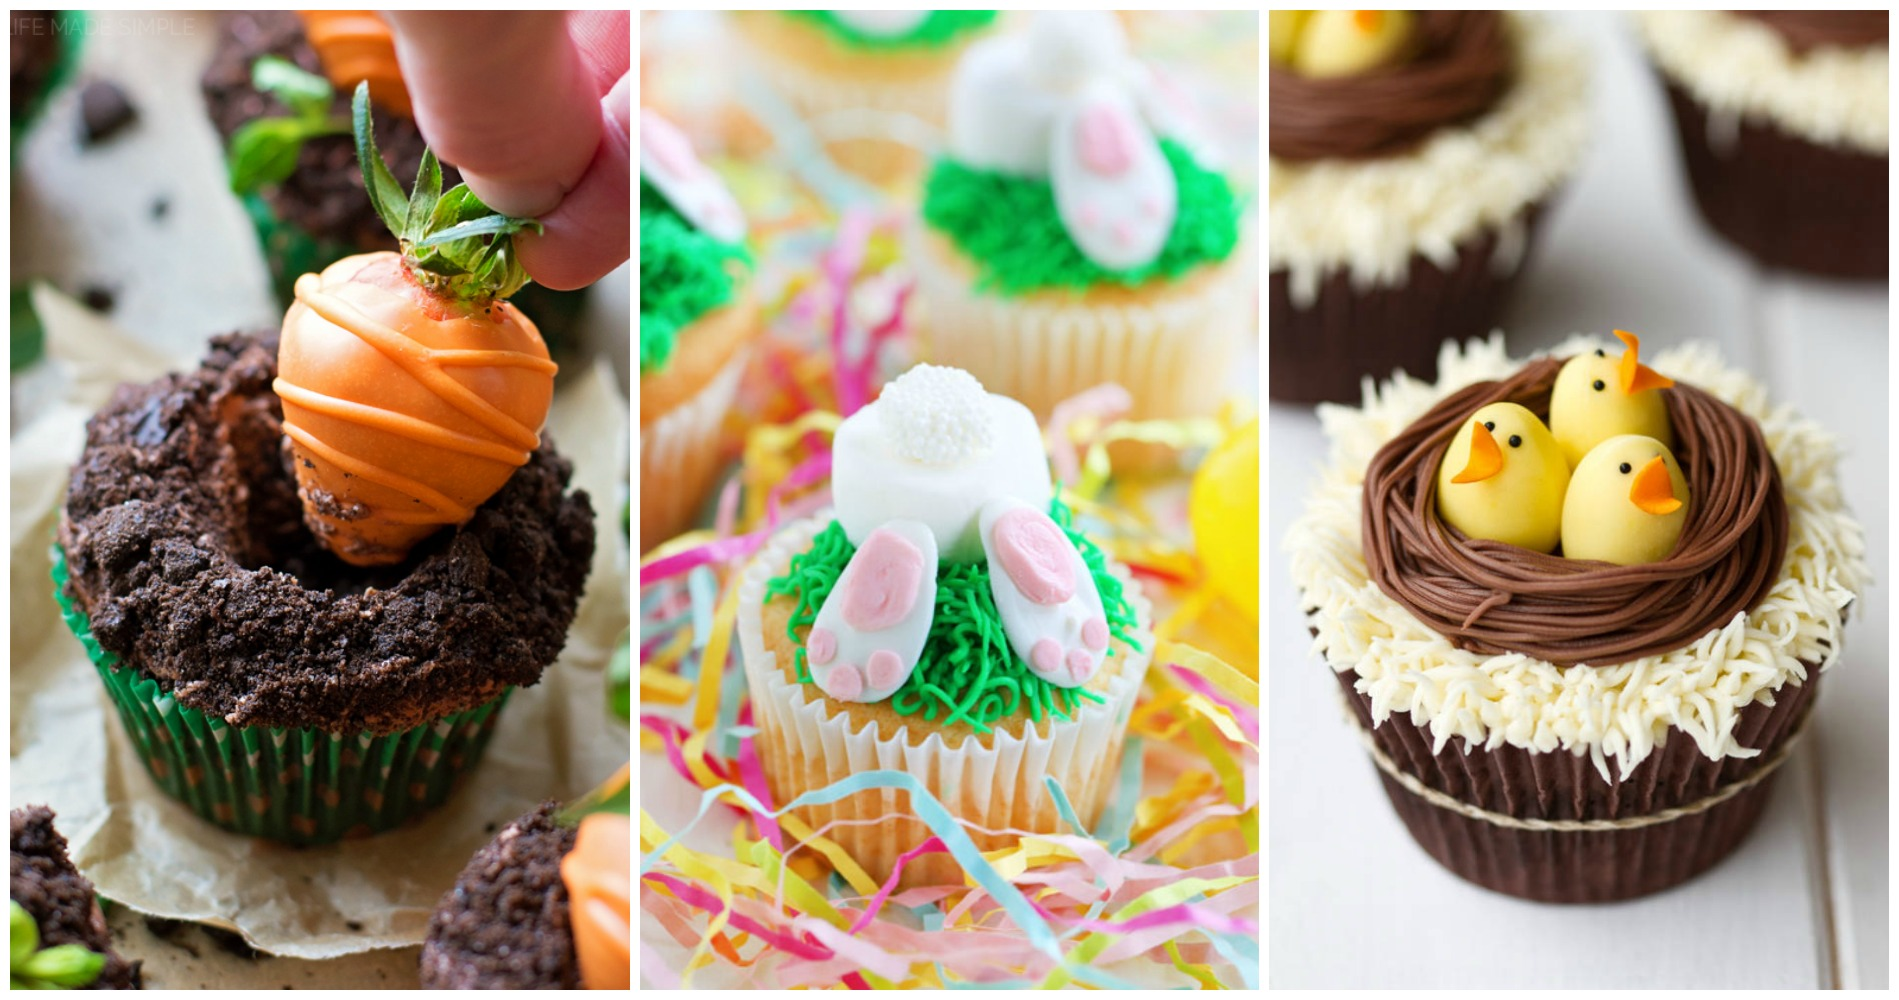 12 Cute Easter Cupcake Ideas Decorating Recipes For